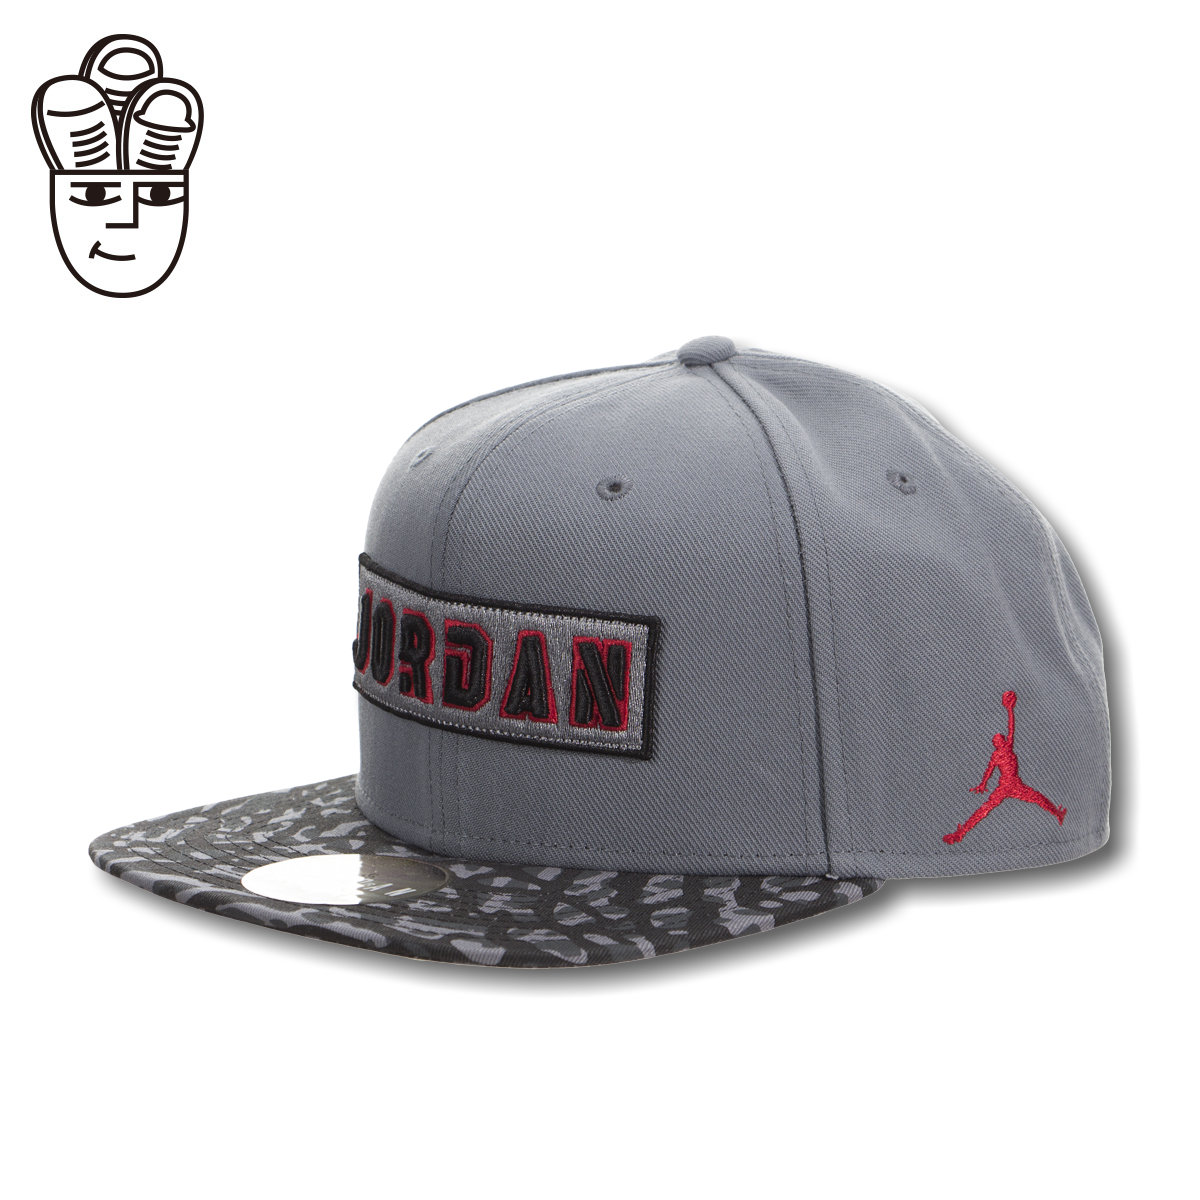 Jordan jumpman aj fashion camo snapback baseball cap flat brimmed hat leisure hat